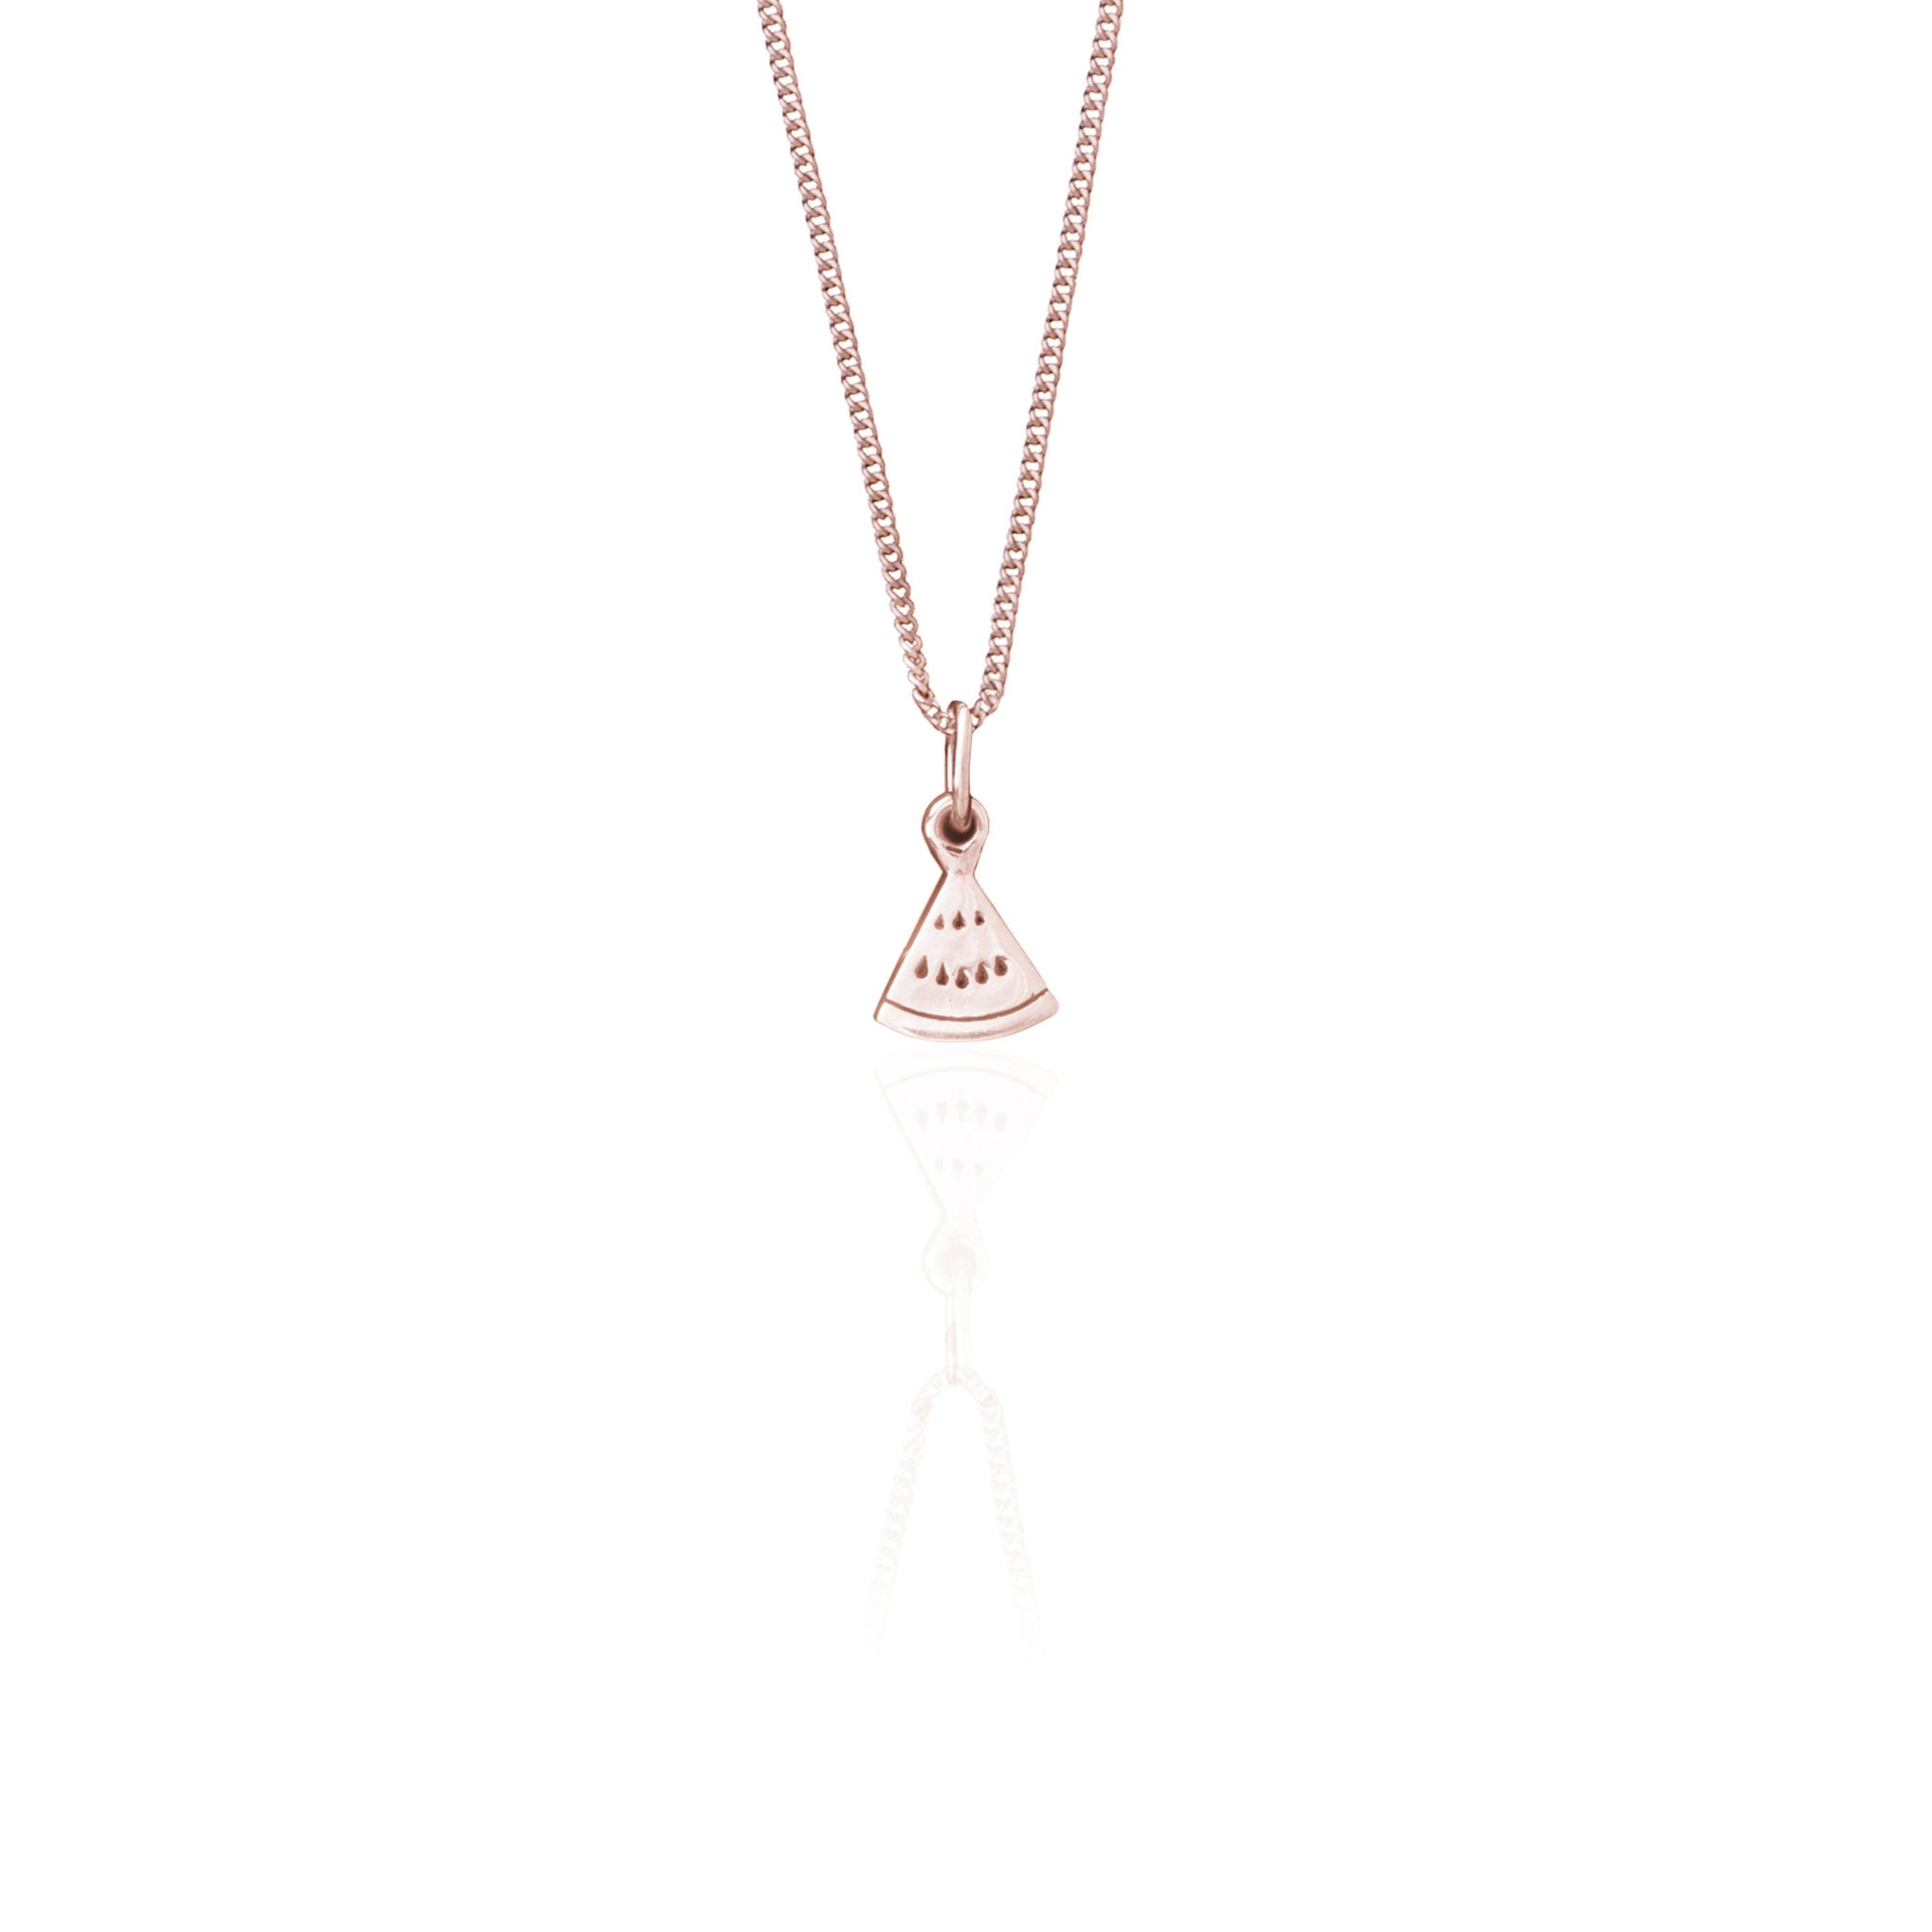 La Luna Rose Jewellery - watermelon Charm Necklace